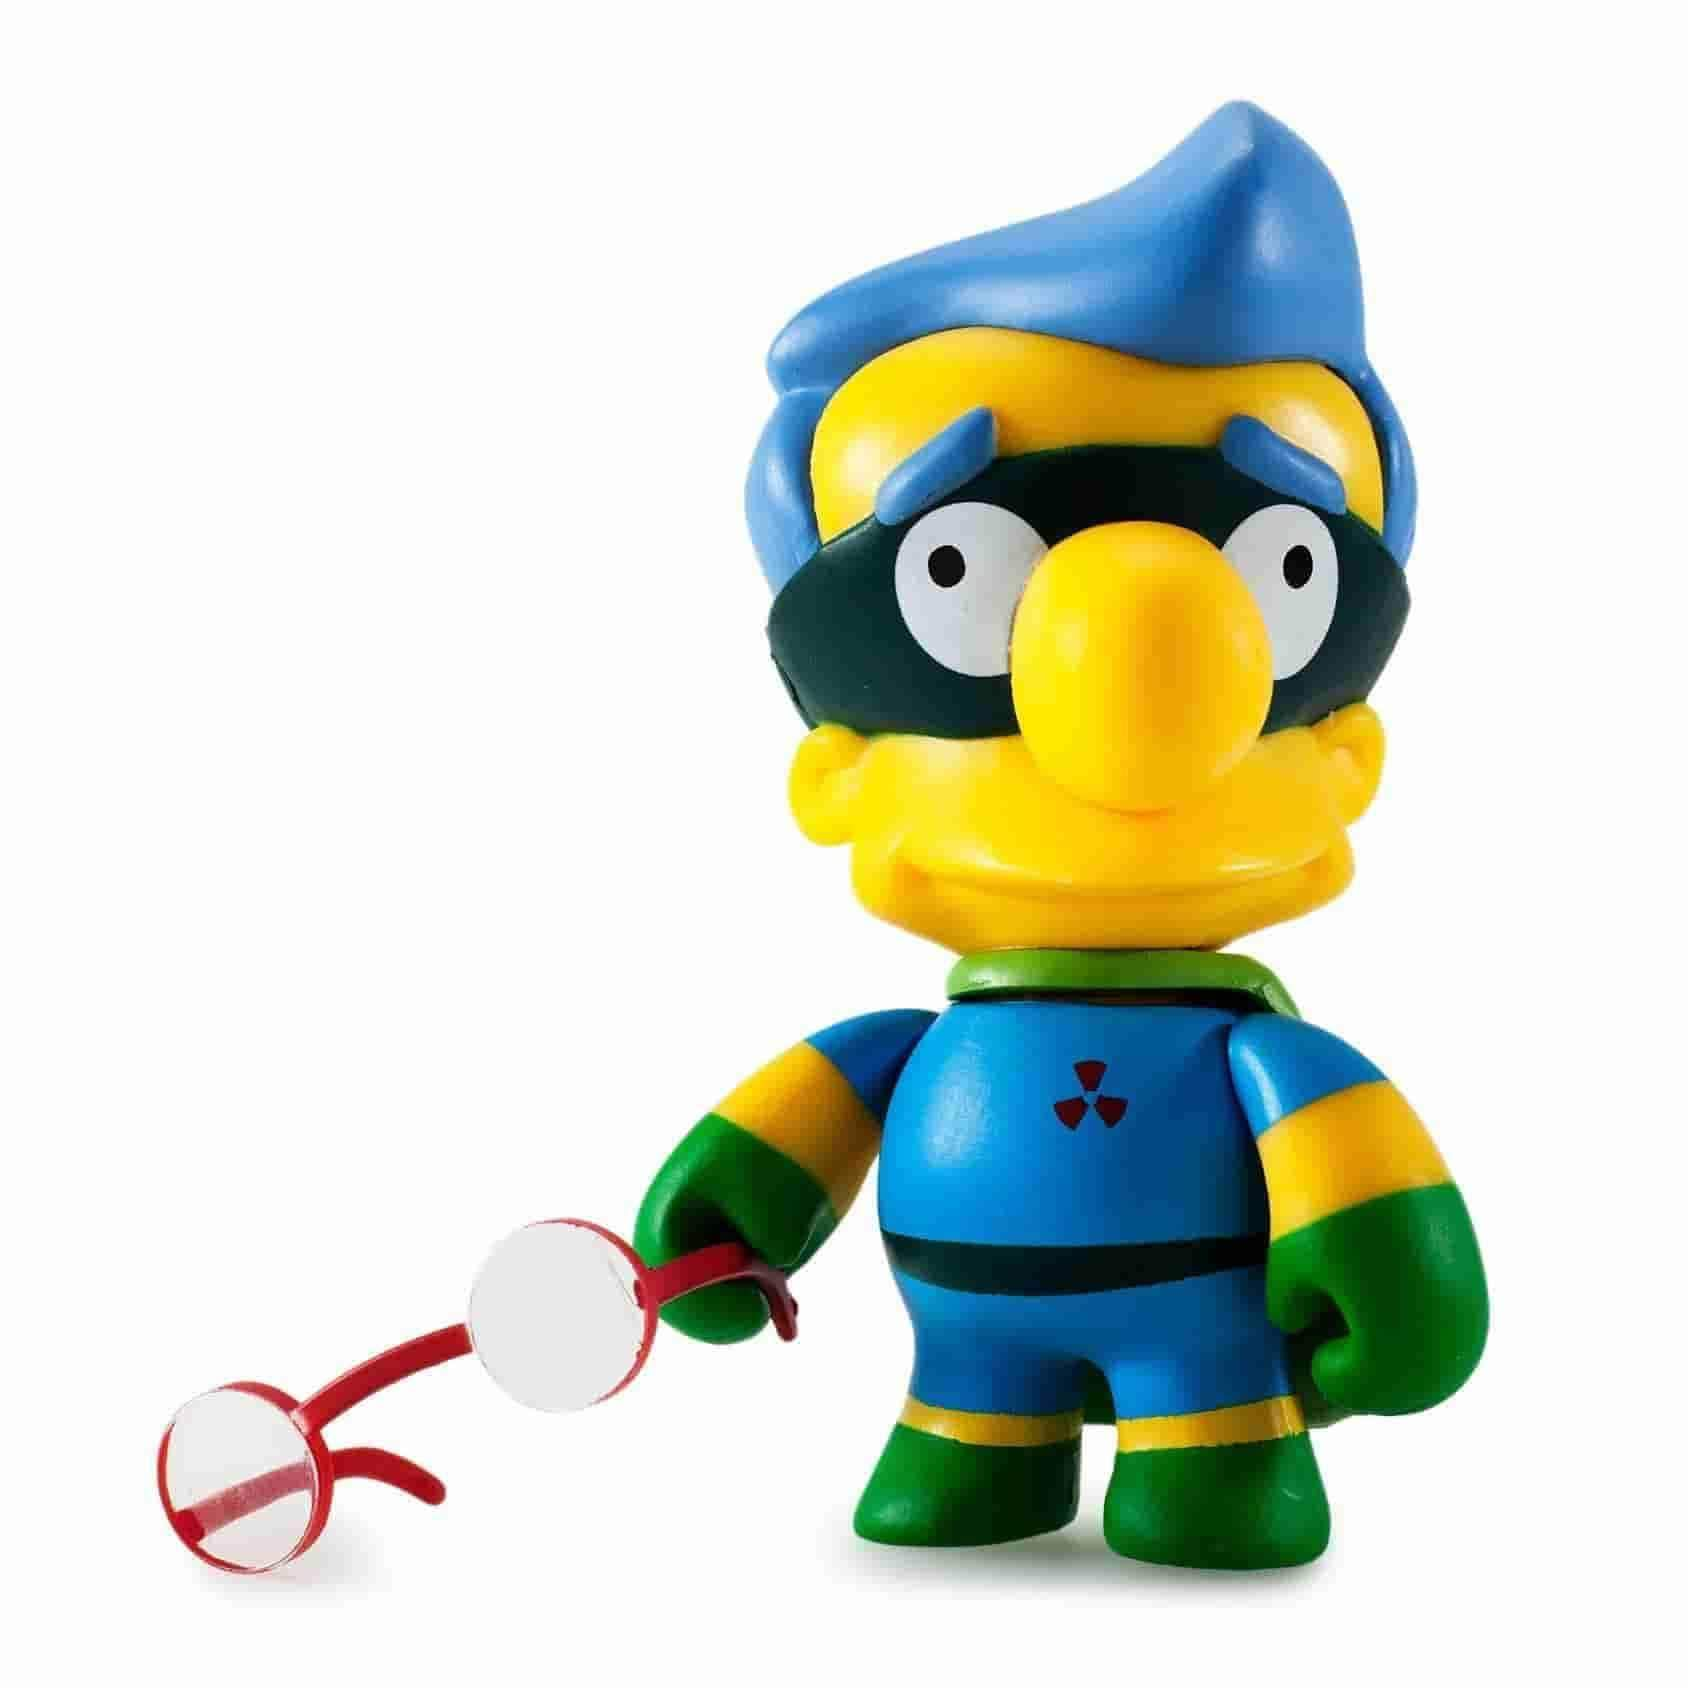 Fallout Boy Simpsons 25th Anniversary Vinyl Mini Series by Kidrobot - IamRetro.com